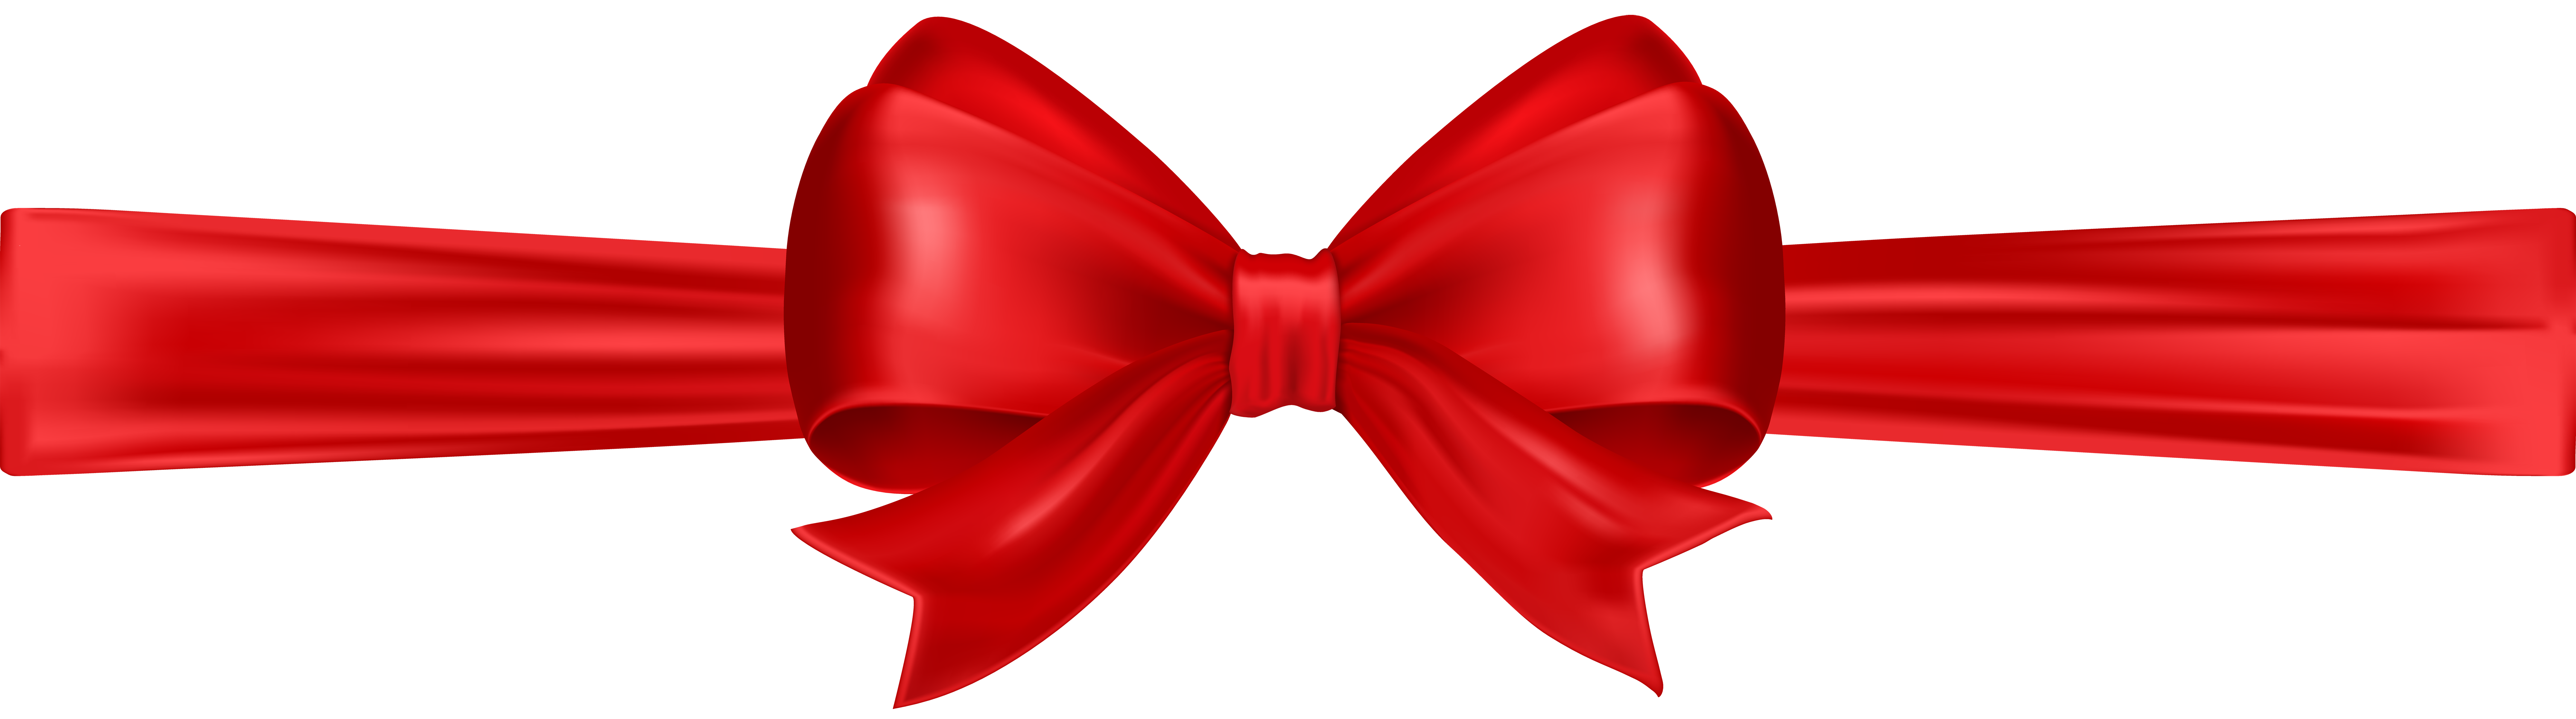 Red Bow Clip Art PNG Image.